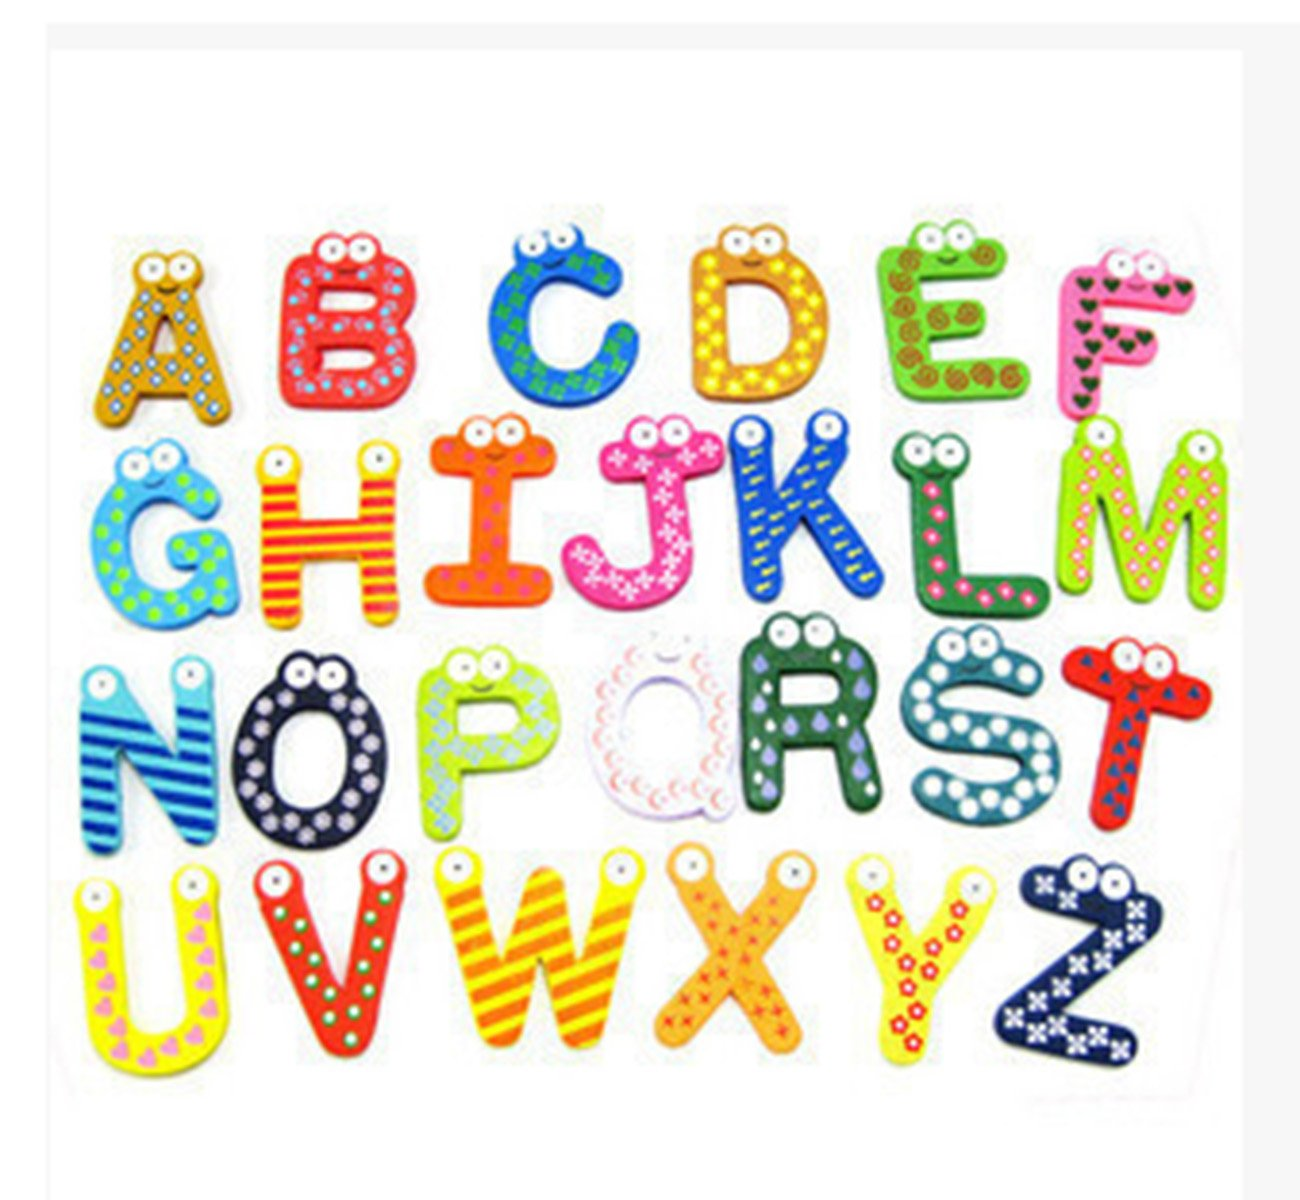 26pcs Funky Fun Colorful Wooden Magnetic Letters A-Z Wooden Fridge Magnets Kid toys Education